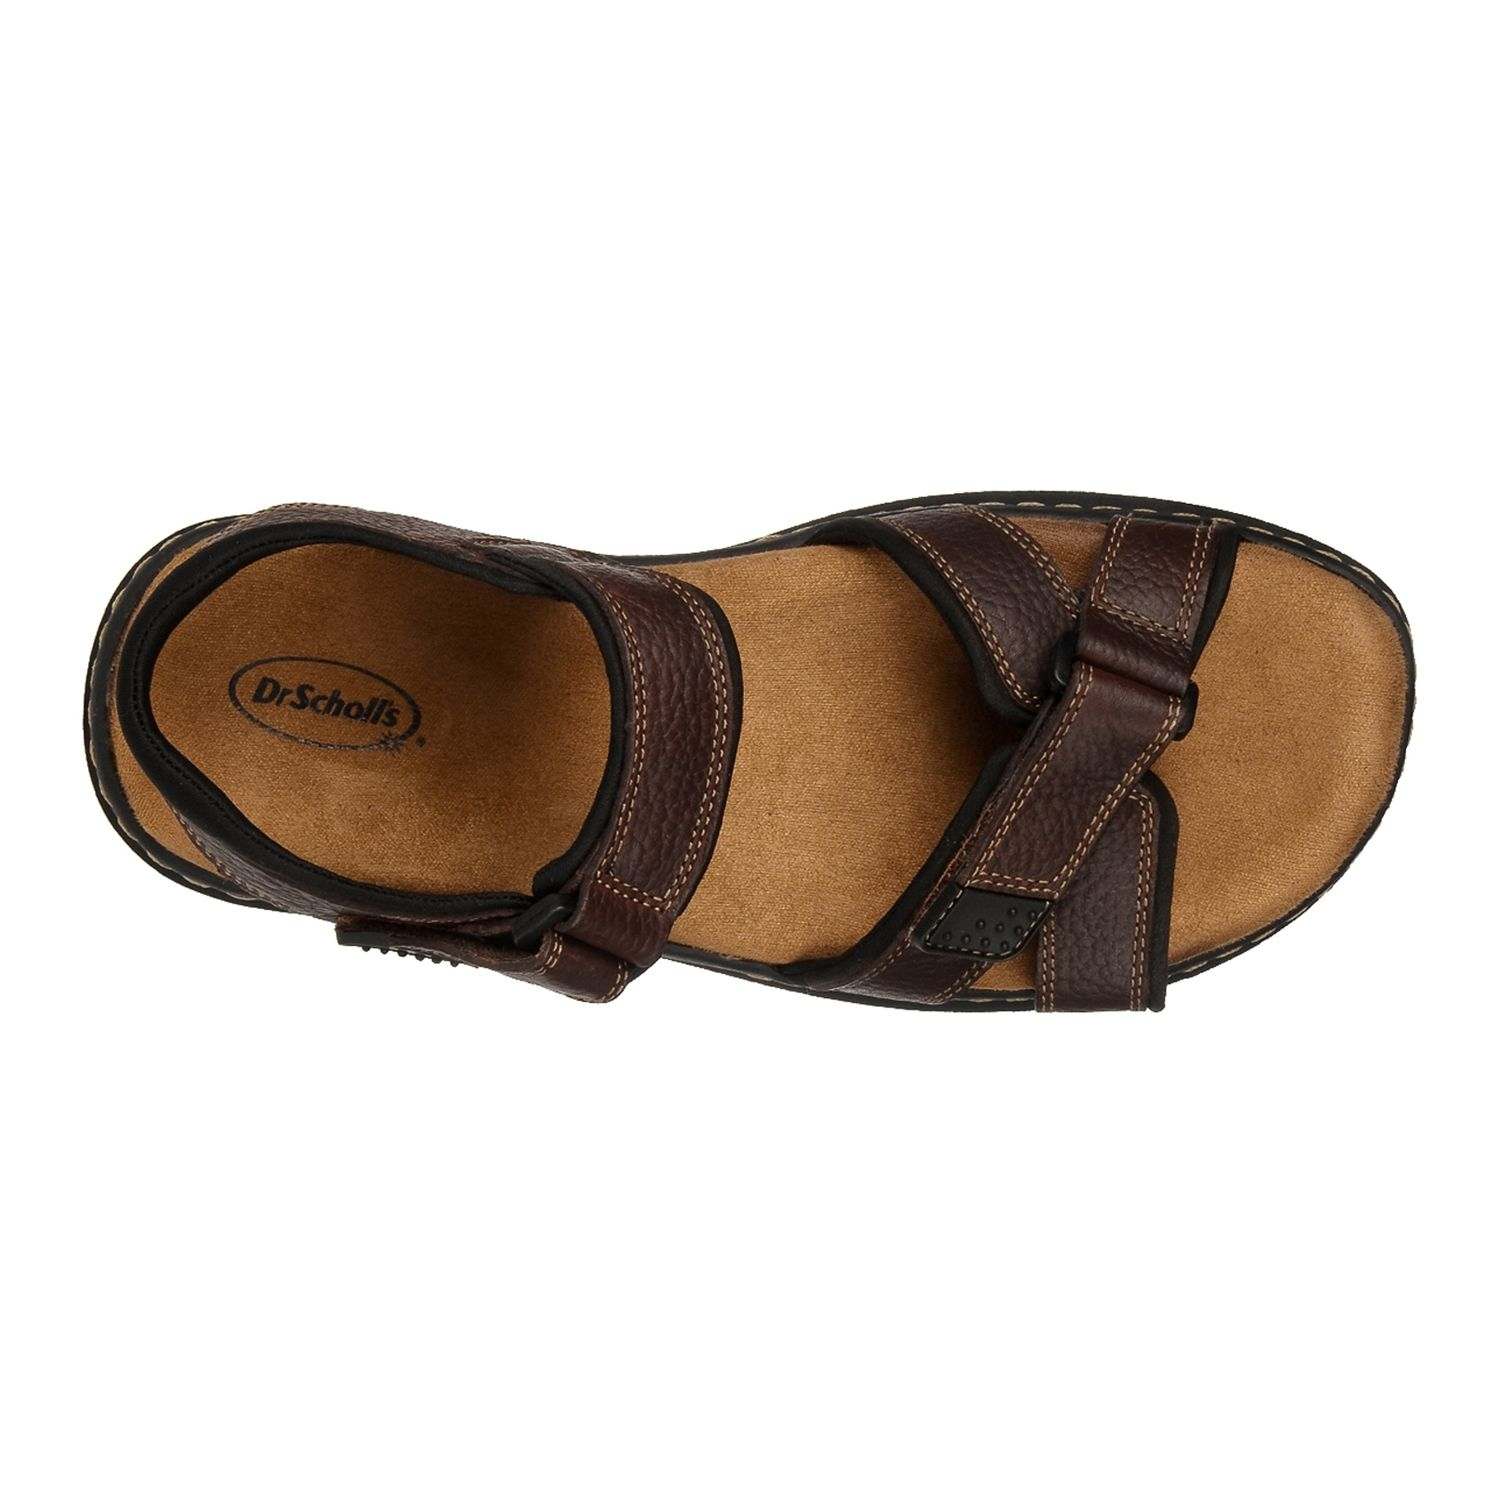 58ae36f5f04 Mens Brown Leather Sandals - Shoes